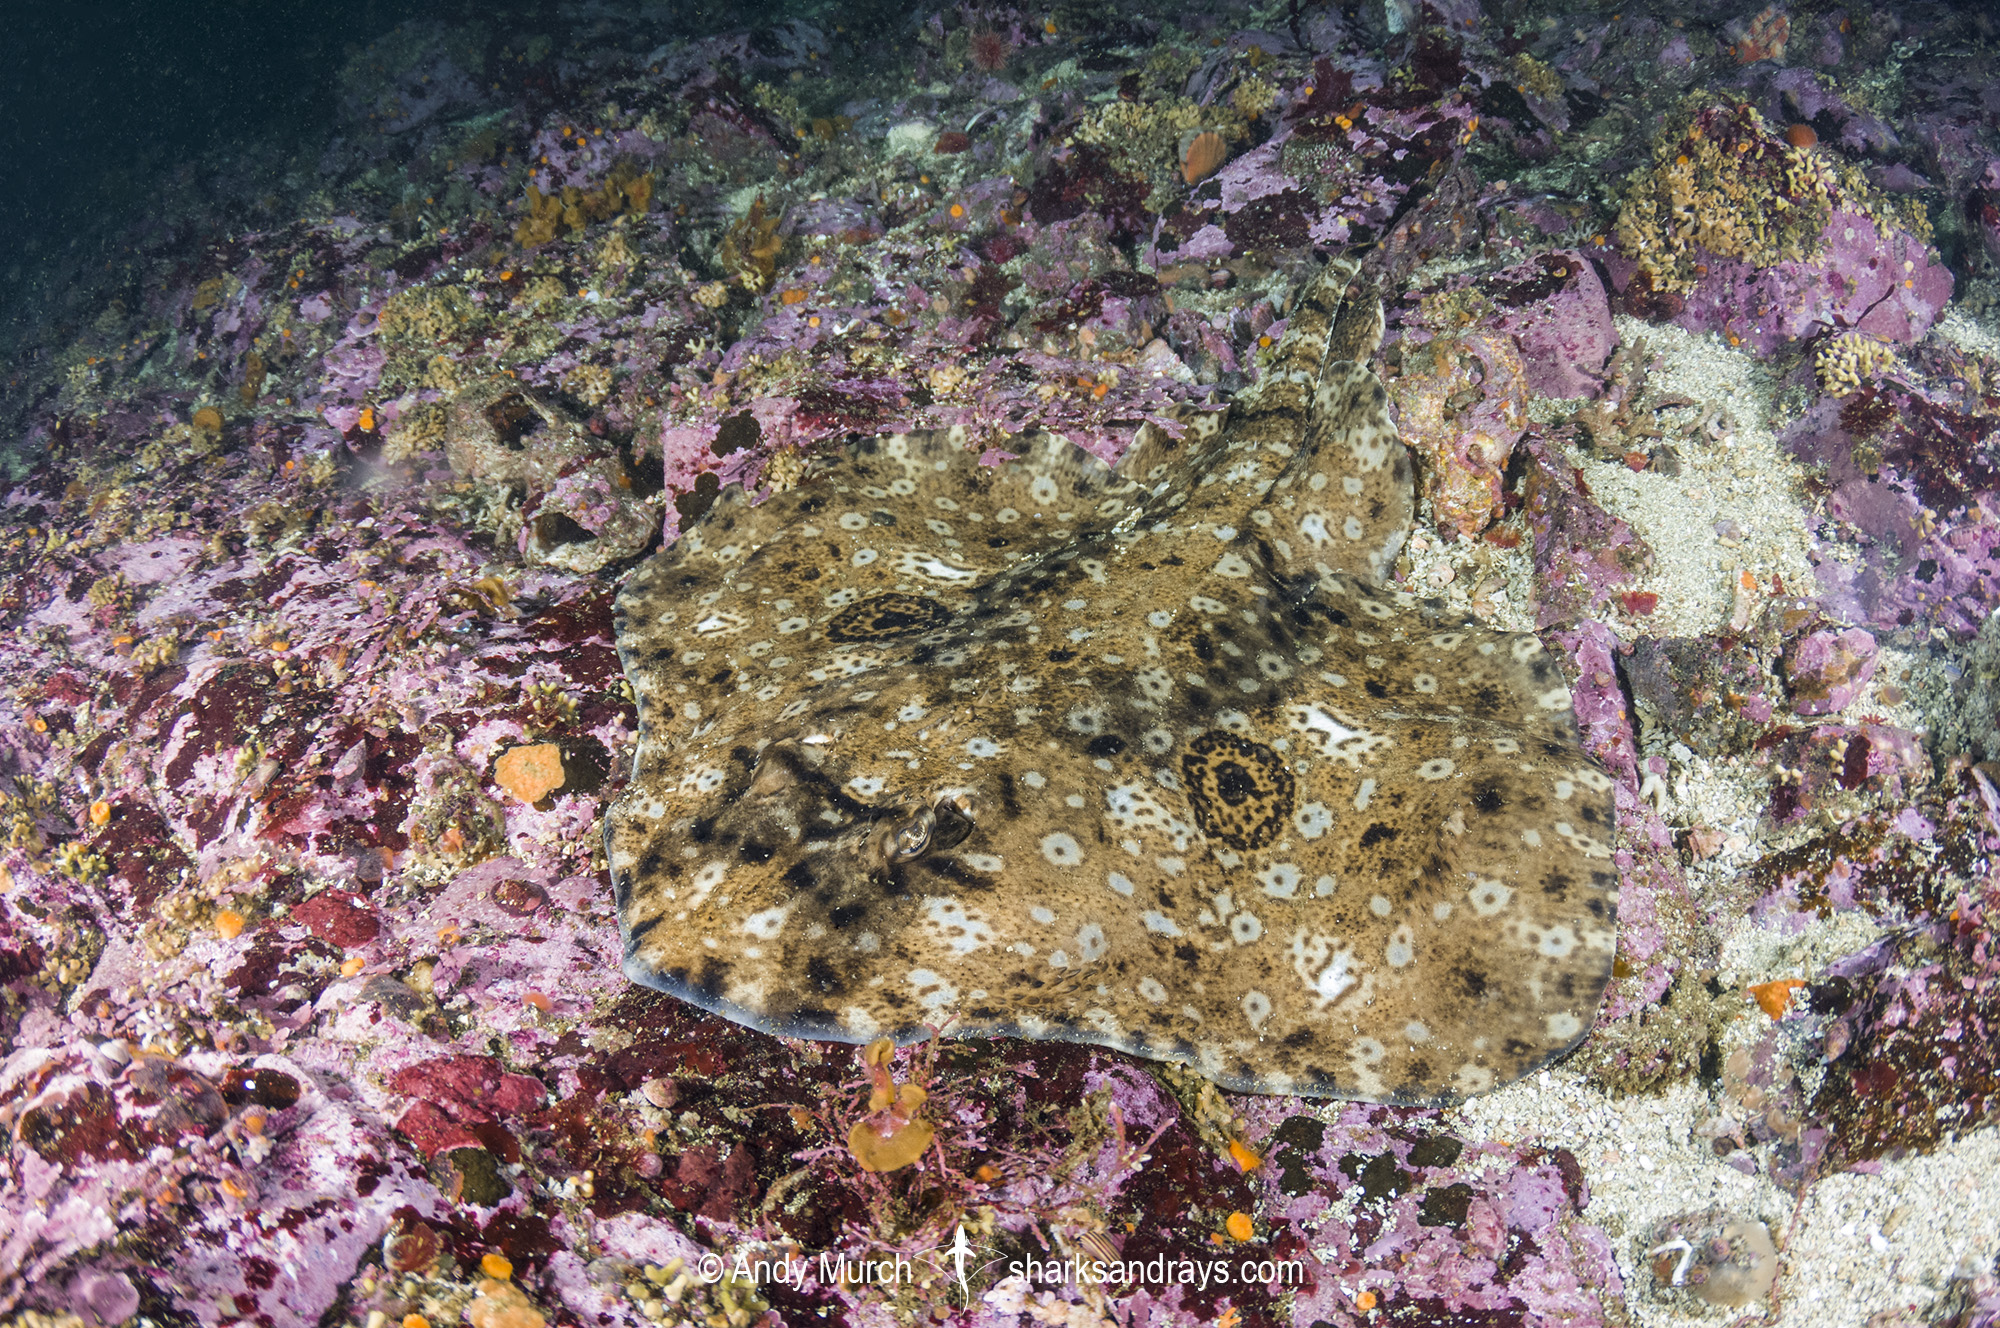 Pacific Starry Skate